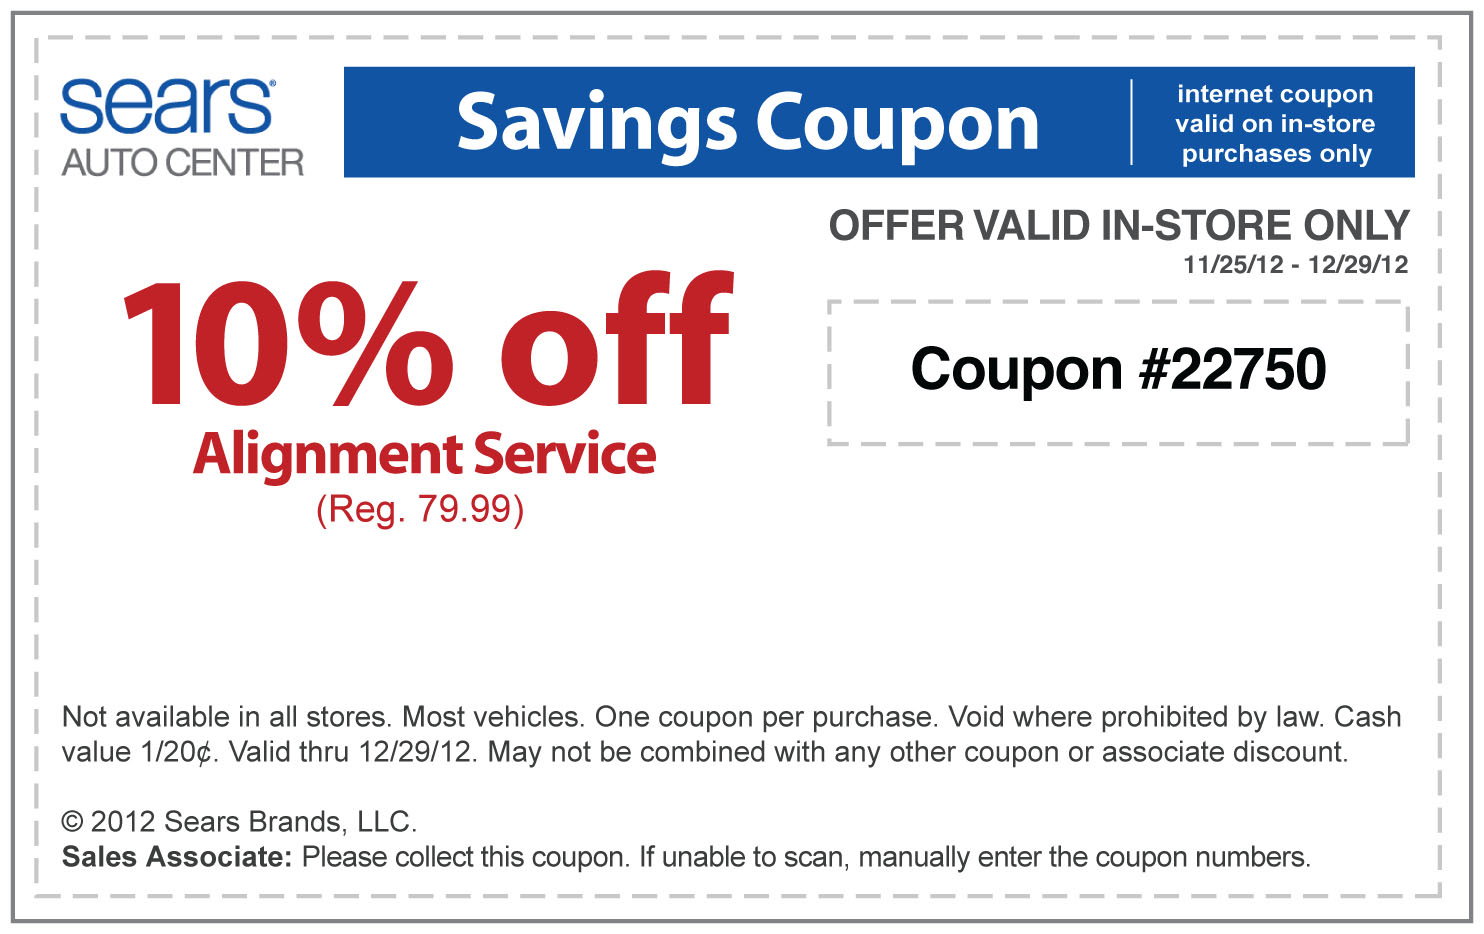 Sears auto discount coupon